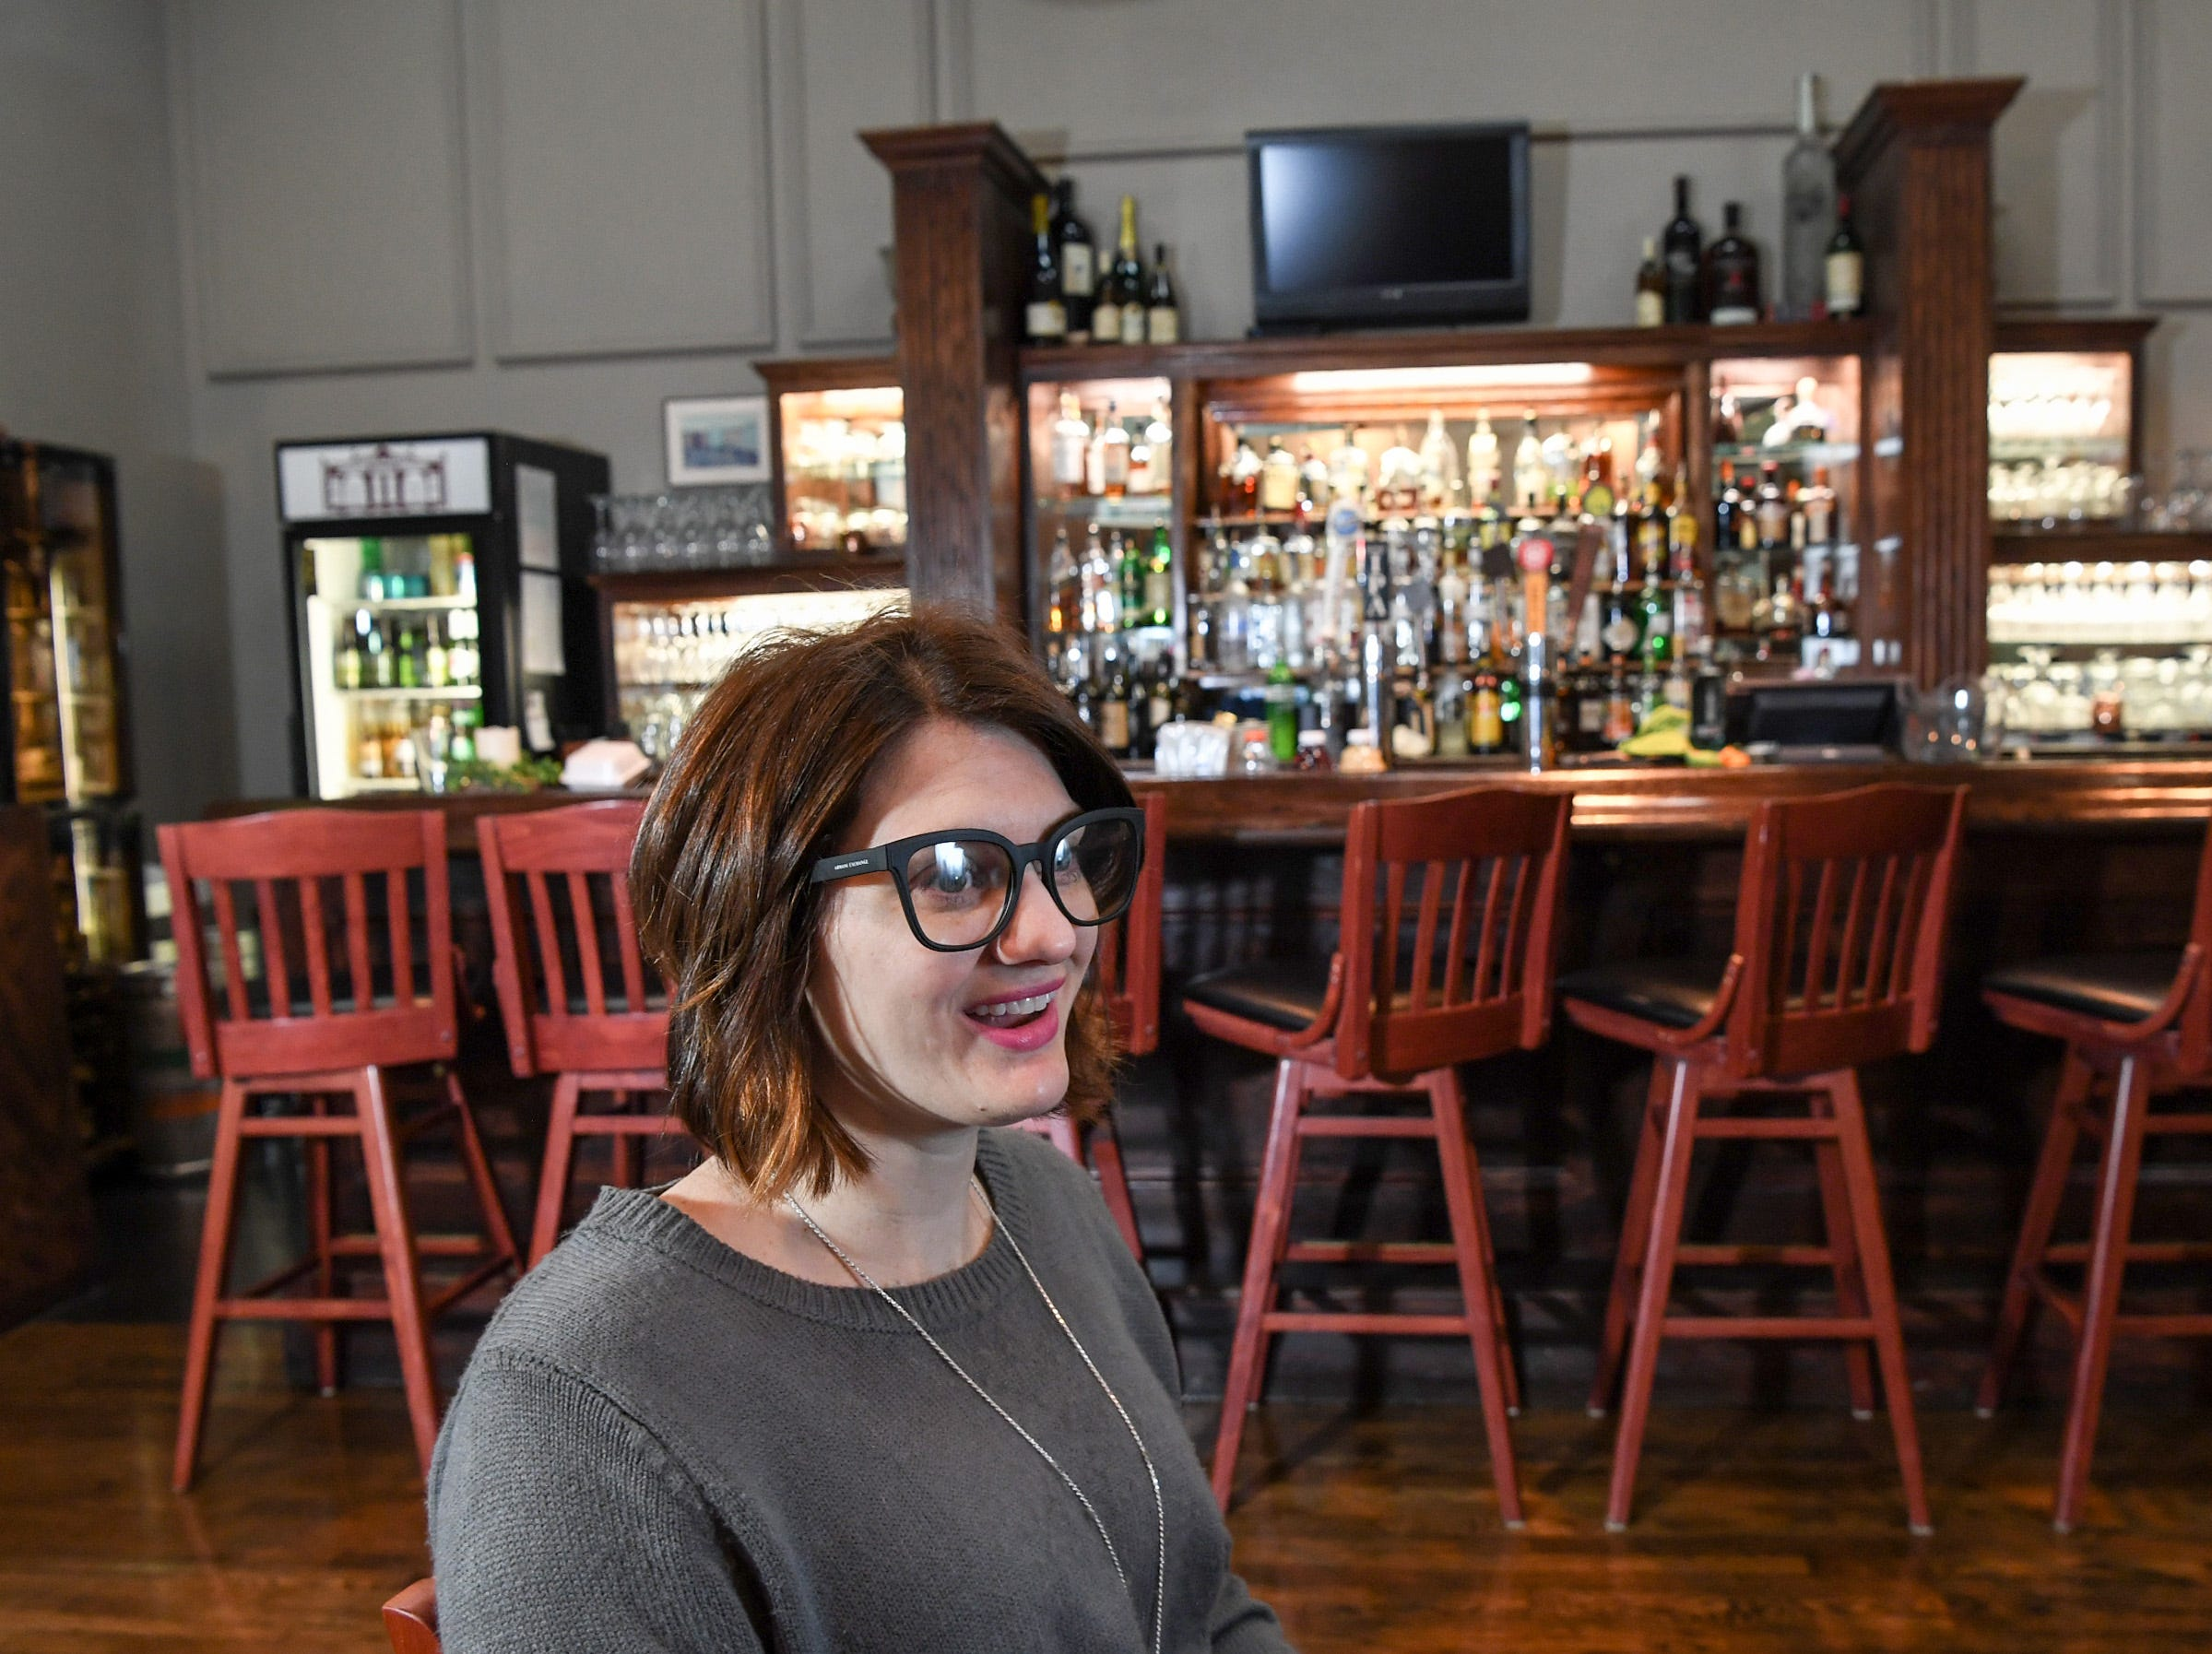 Ali Stigall, manager at Sullivan's Metropolitan Grill in Anderson, talks working with good employees and a seeing a supportive community in a growing downtown Anderson.